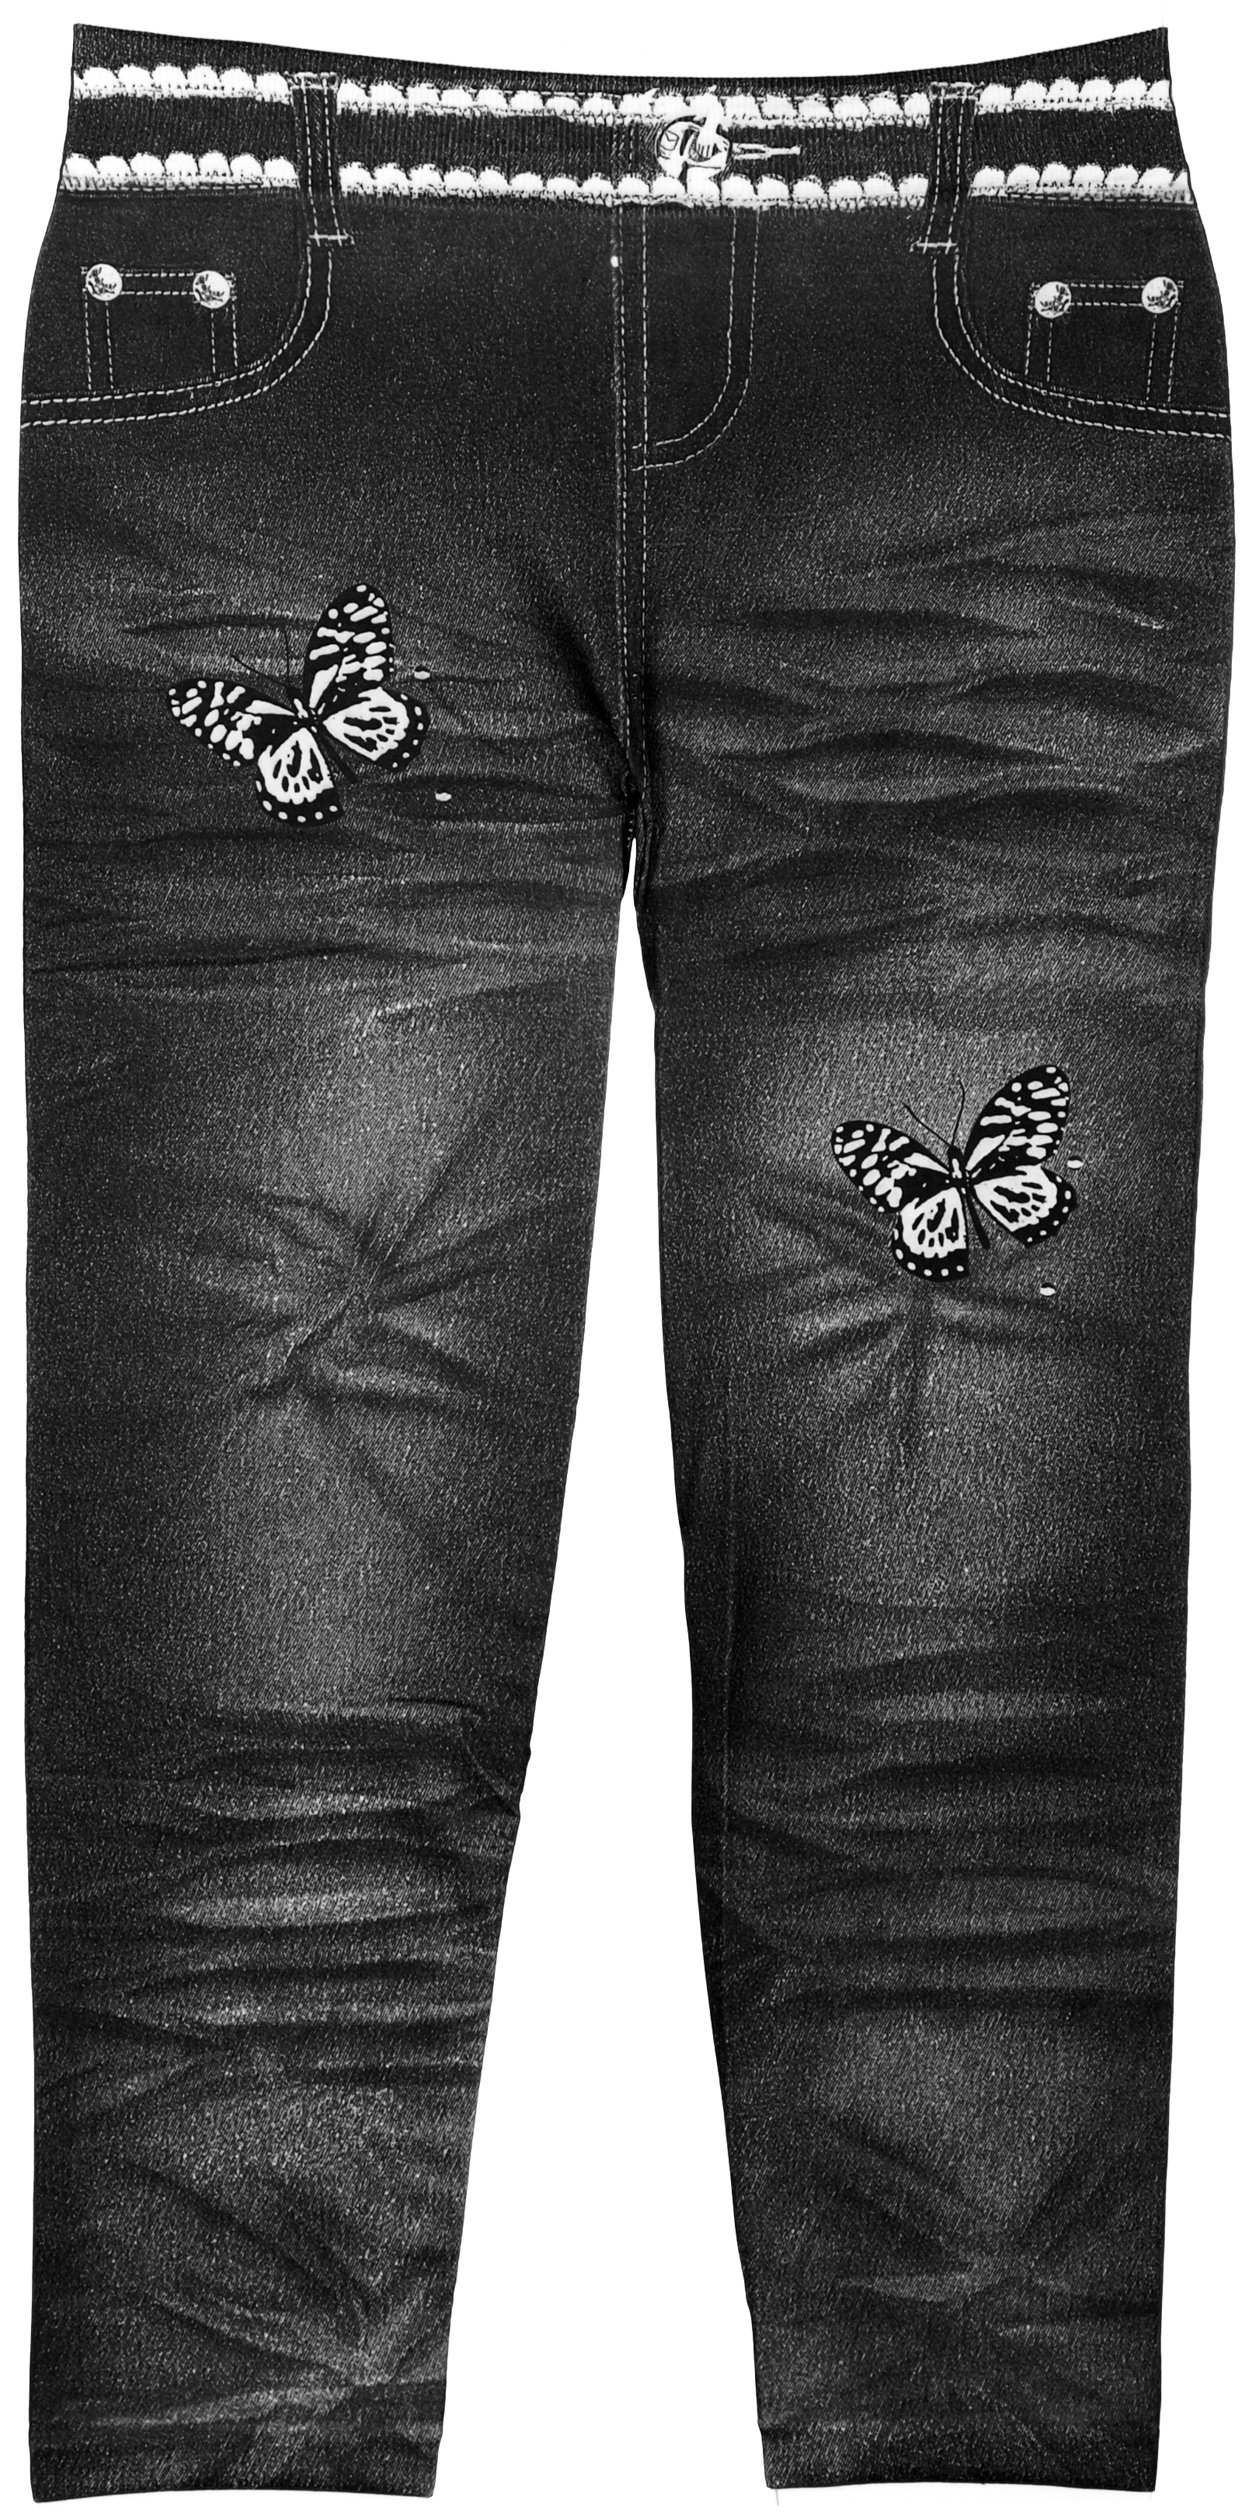 Crush Girls Leggings in 8 Fun Colors and Designs Toddlers Youth and Teens (2T/4T, 22572 Black)